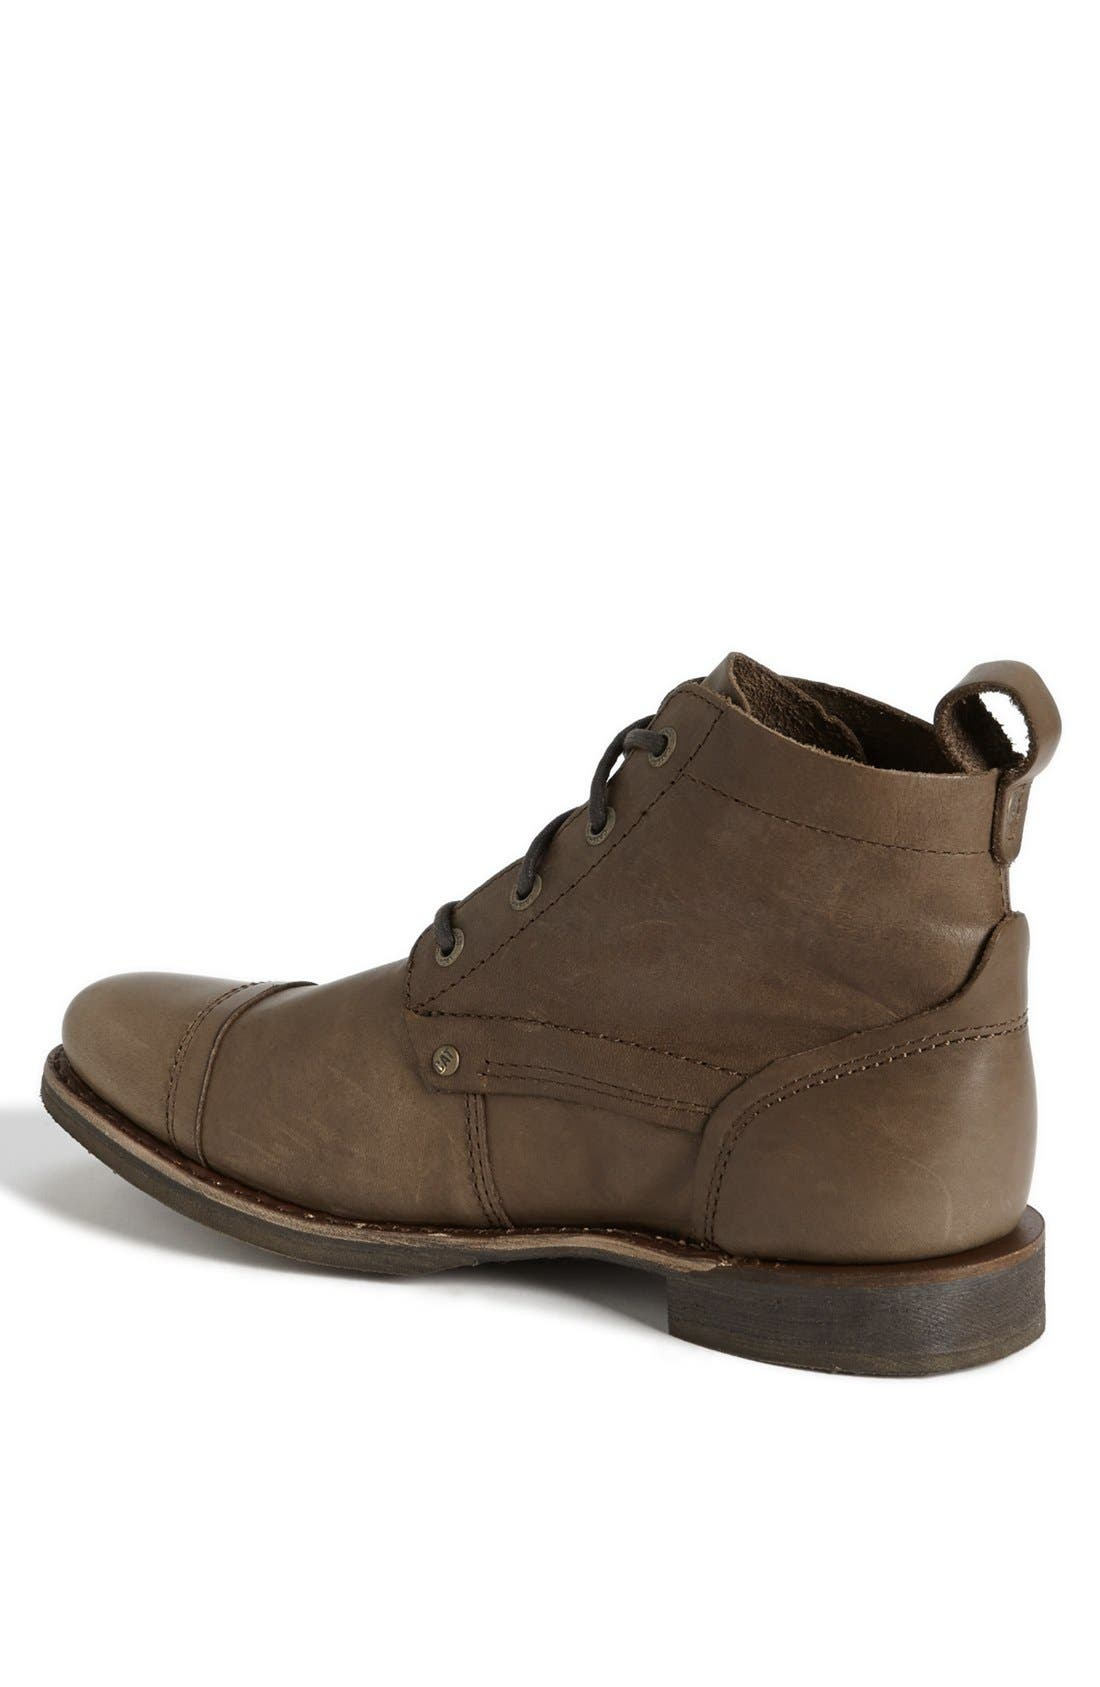 Alternate Image 2  - Caterpillar 'Morrison' Cap Toe Boot (Men)